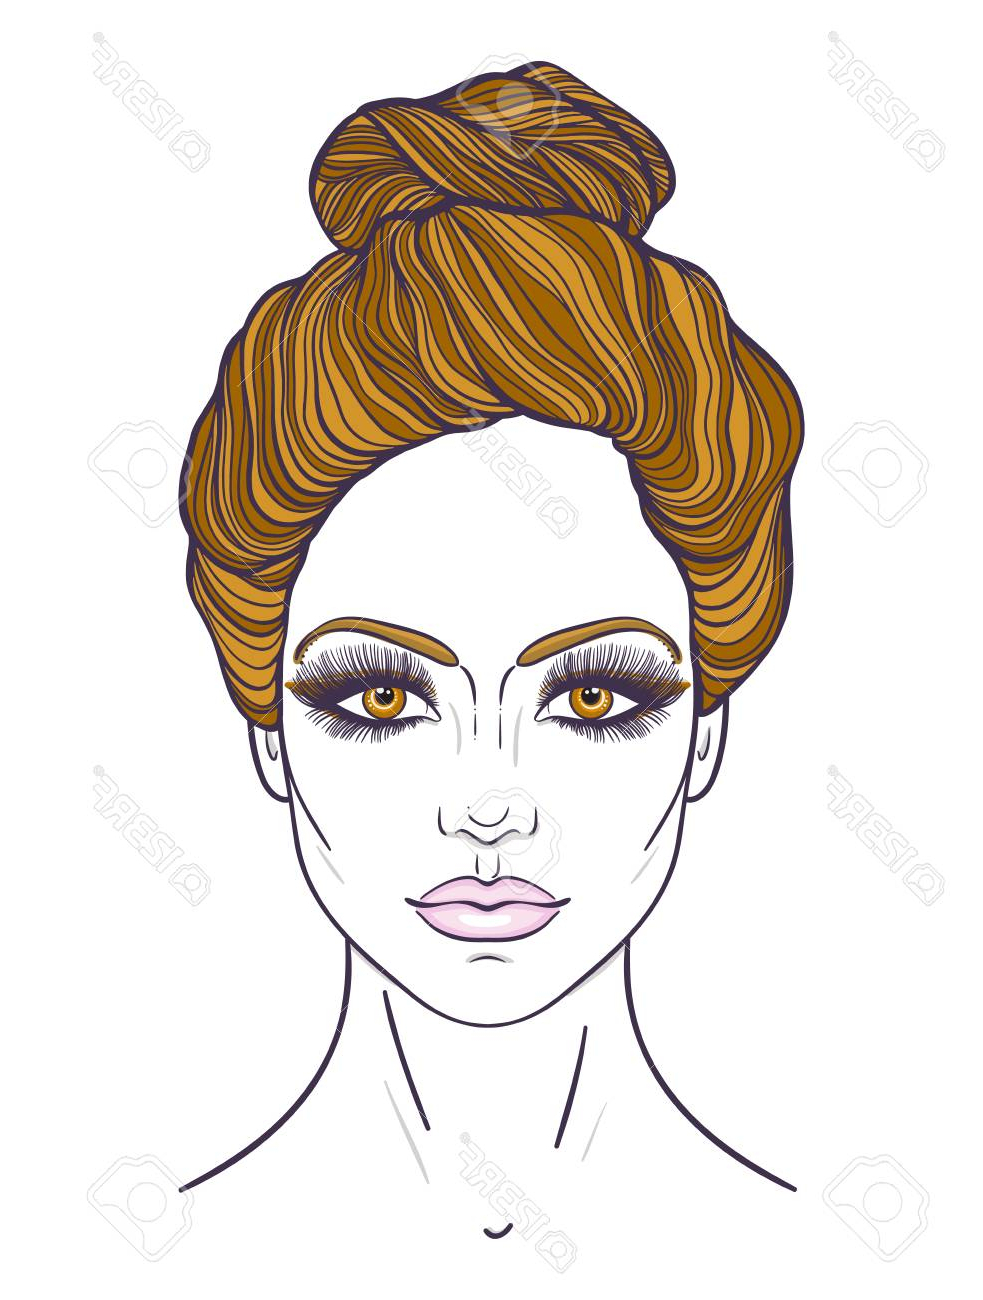 Widely Used Decorative Topknot Hairstyles With Regard To Stock Illustration (View 4 of 20)